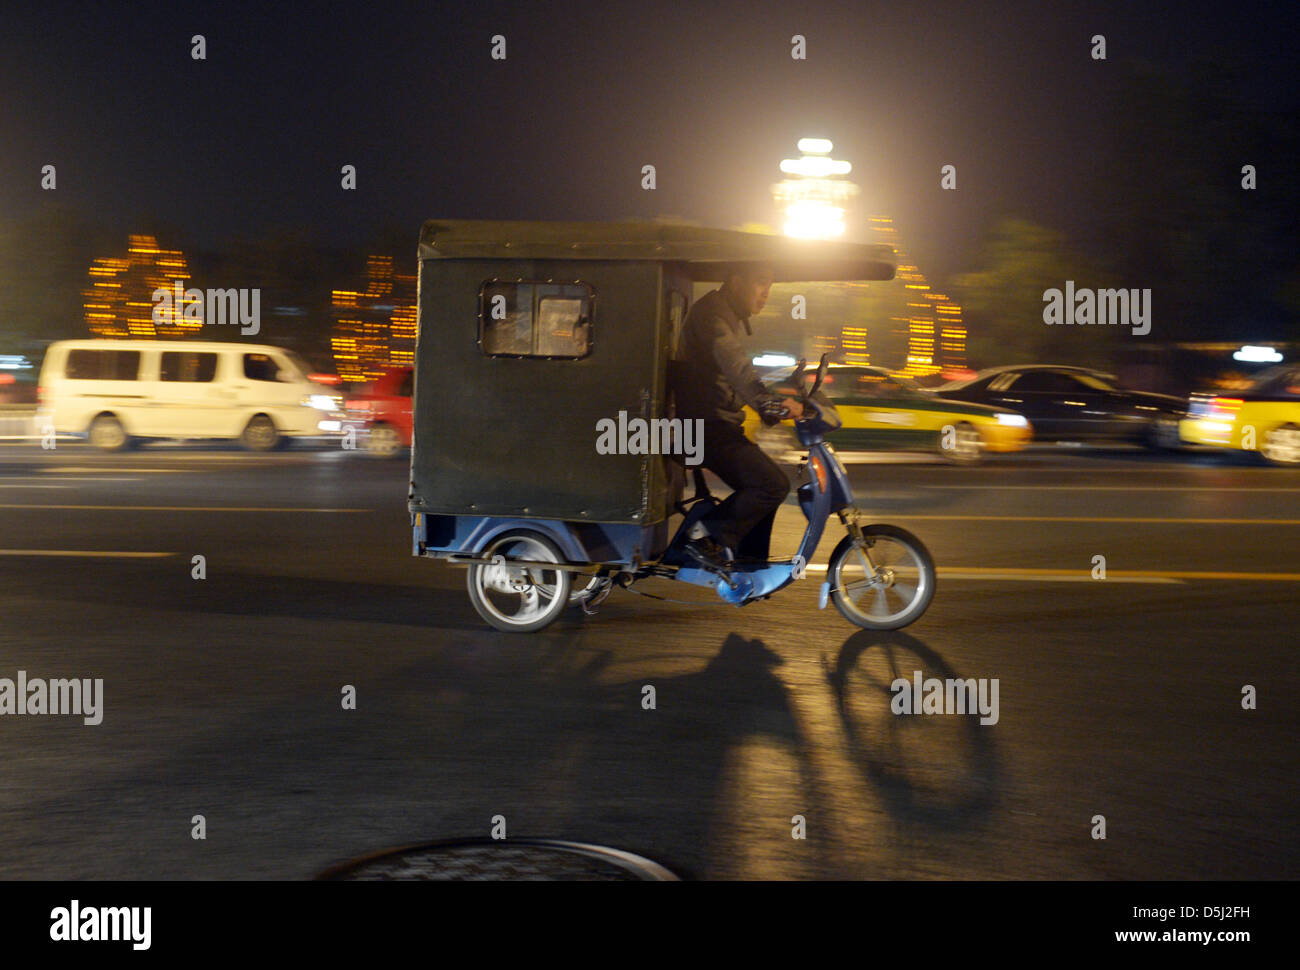 A man rides on a tricycle through busy evening traffic in Bejing, China, 11 October 2012. Photo: Rainer Jensen - Stock Image